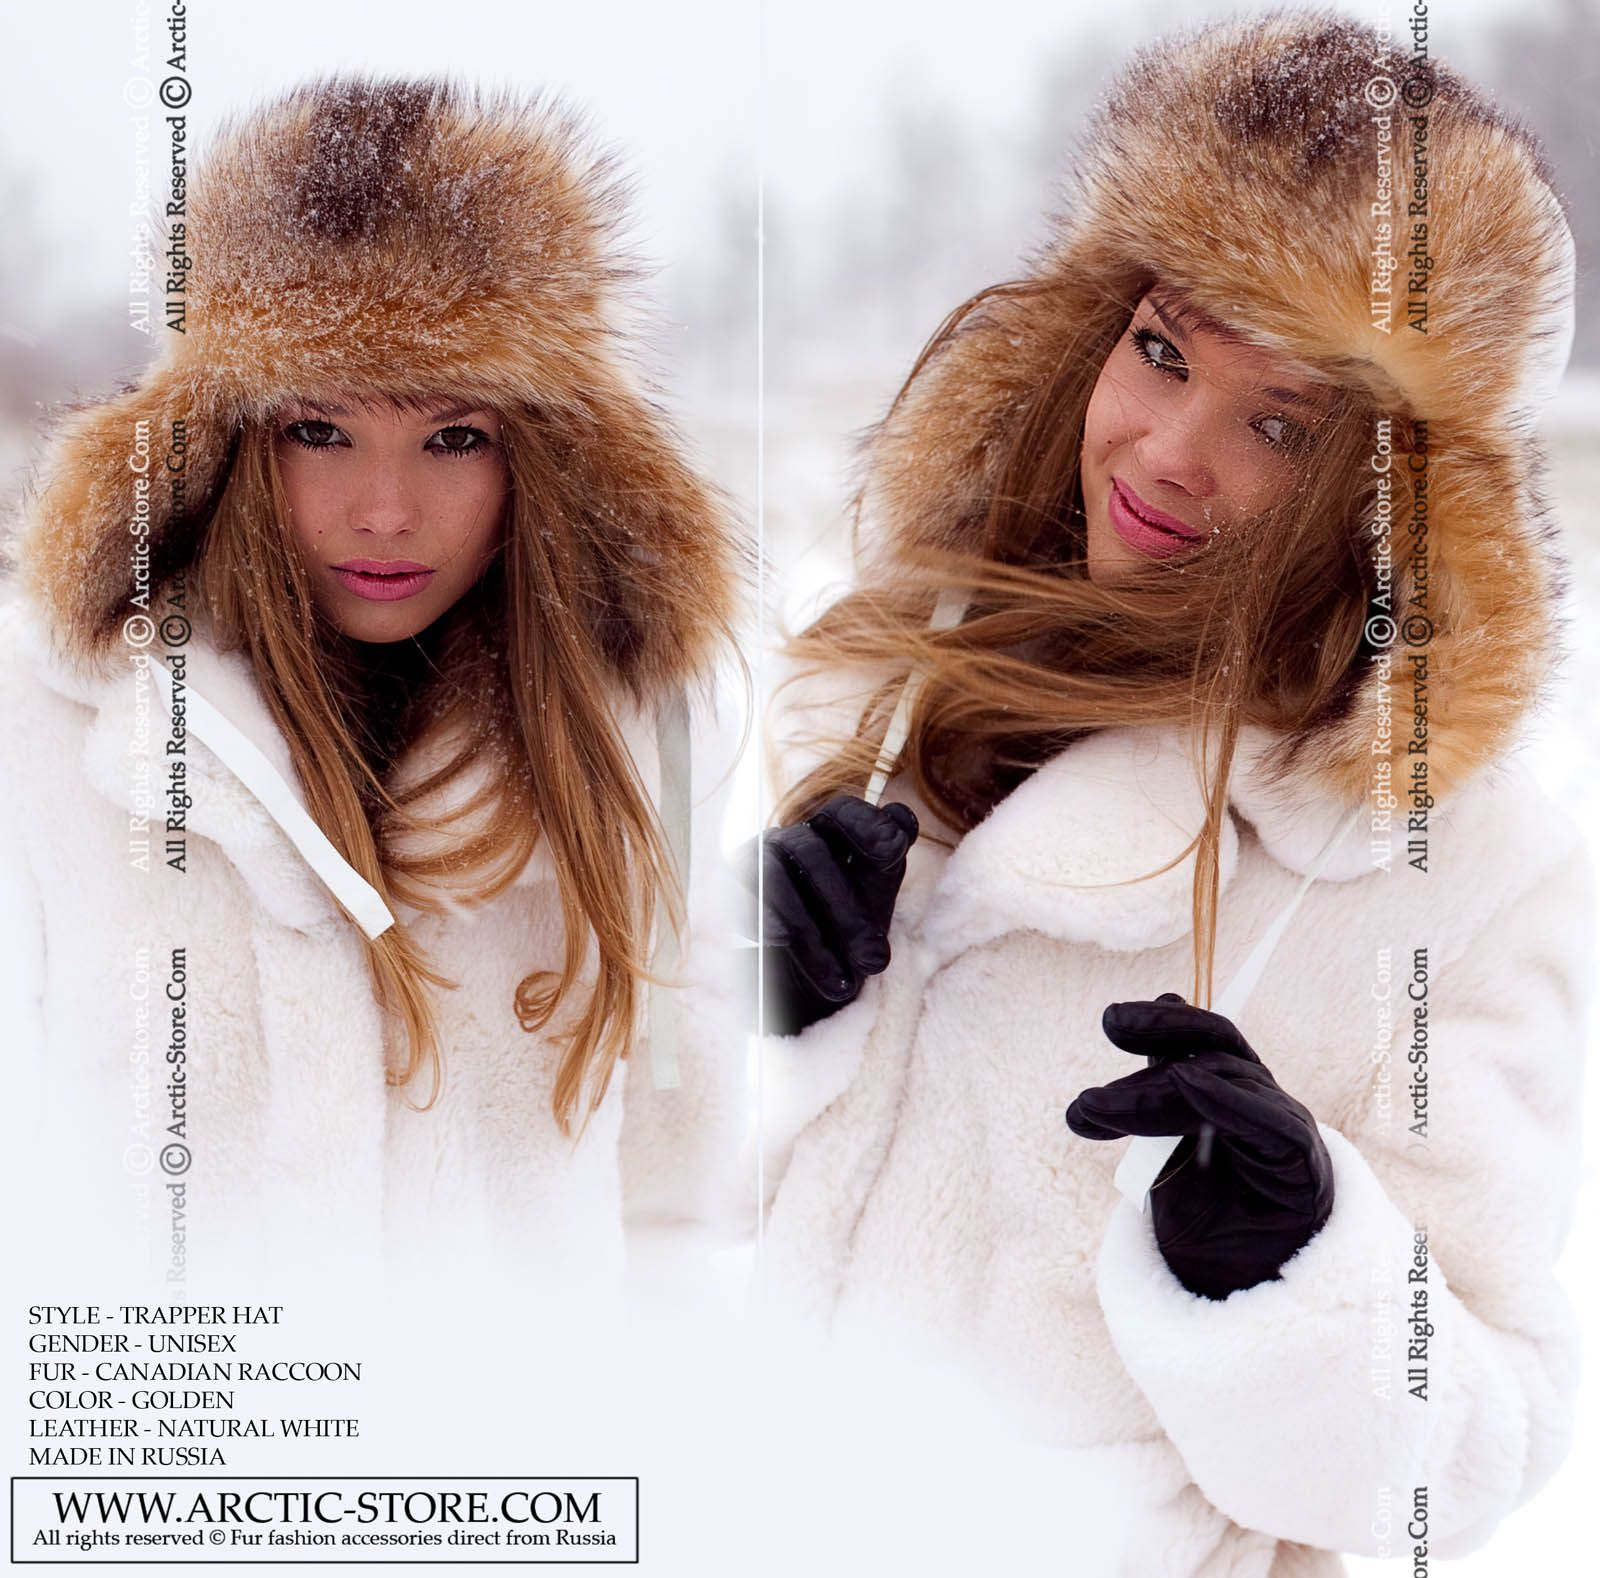 Warm gold Canadian raccoon fur is our newest color addition for this  season. The trapper style Ushanka hat has the traditional shape of a man s  hat 882c7ddffaa9